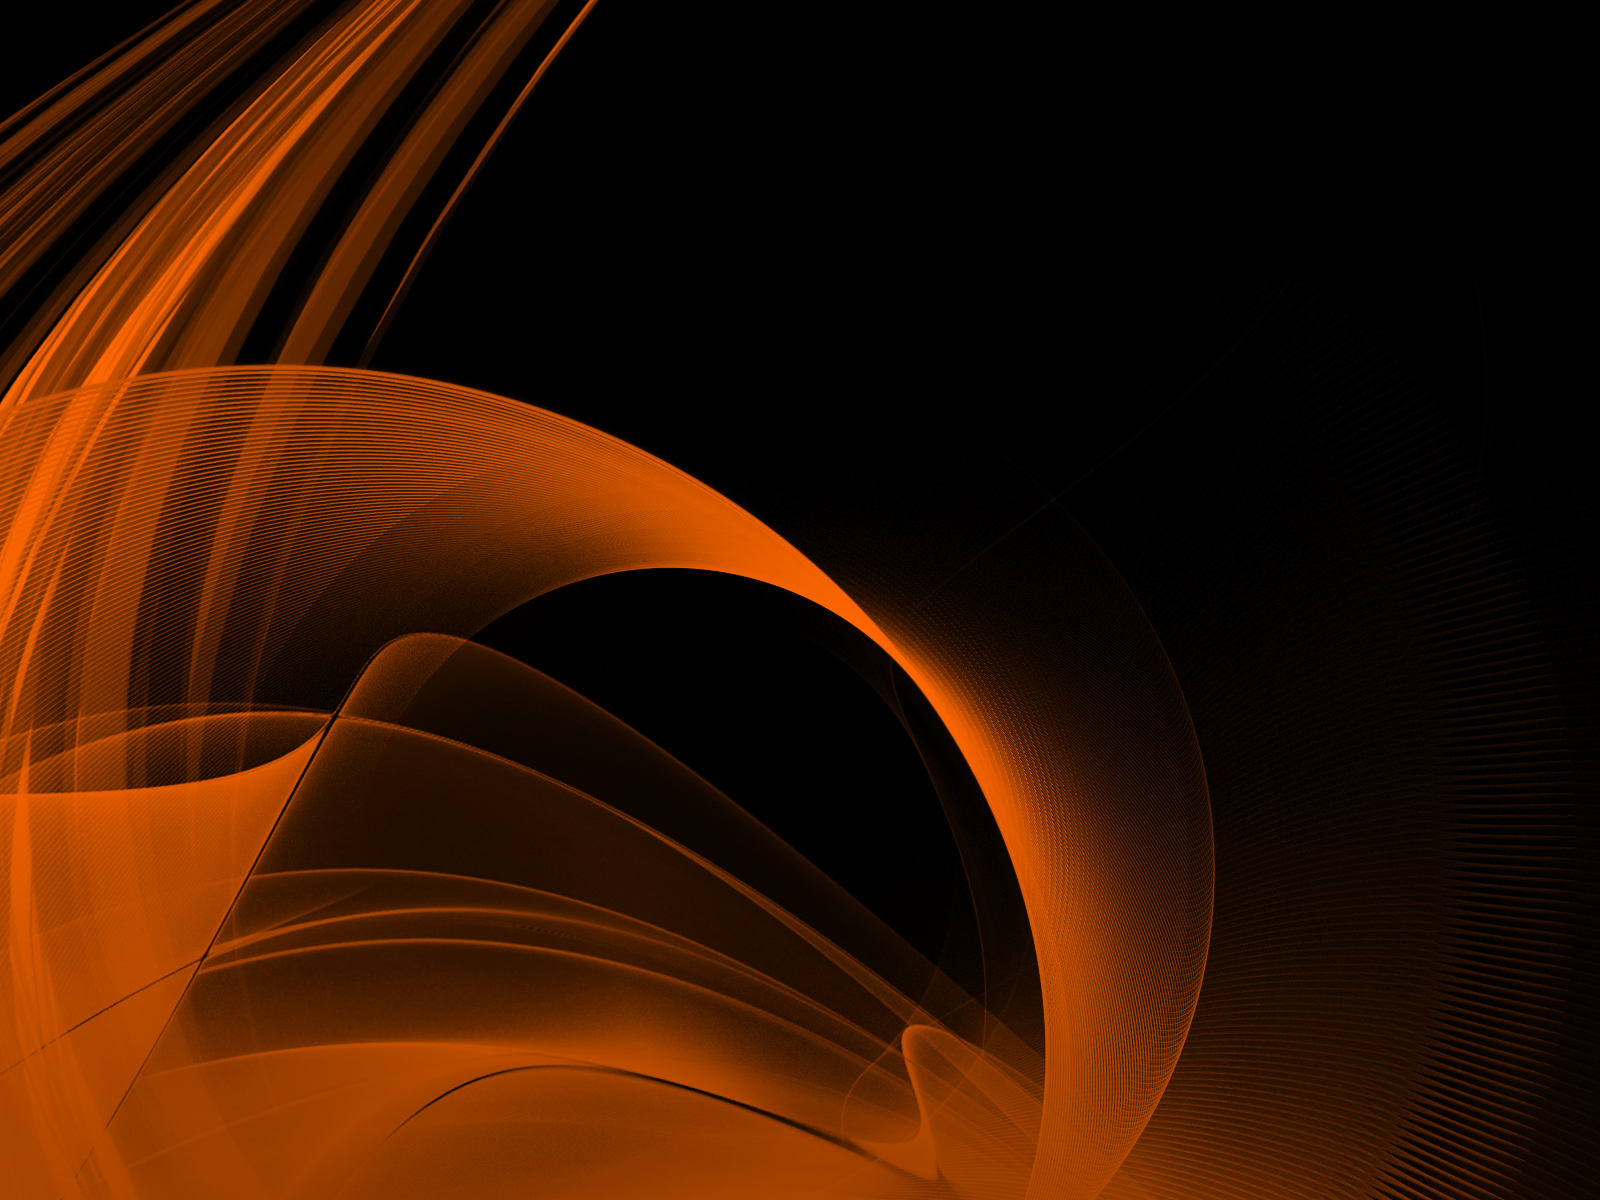 Black Abstract Wallpapers: Black Abstract Wallpaper 31 Desktop Background